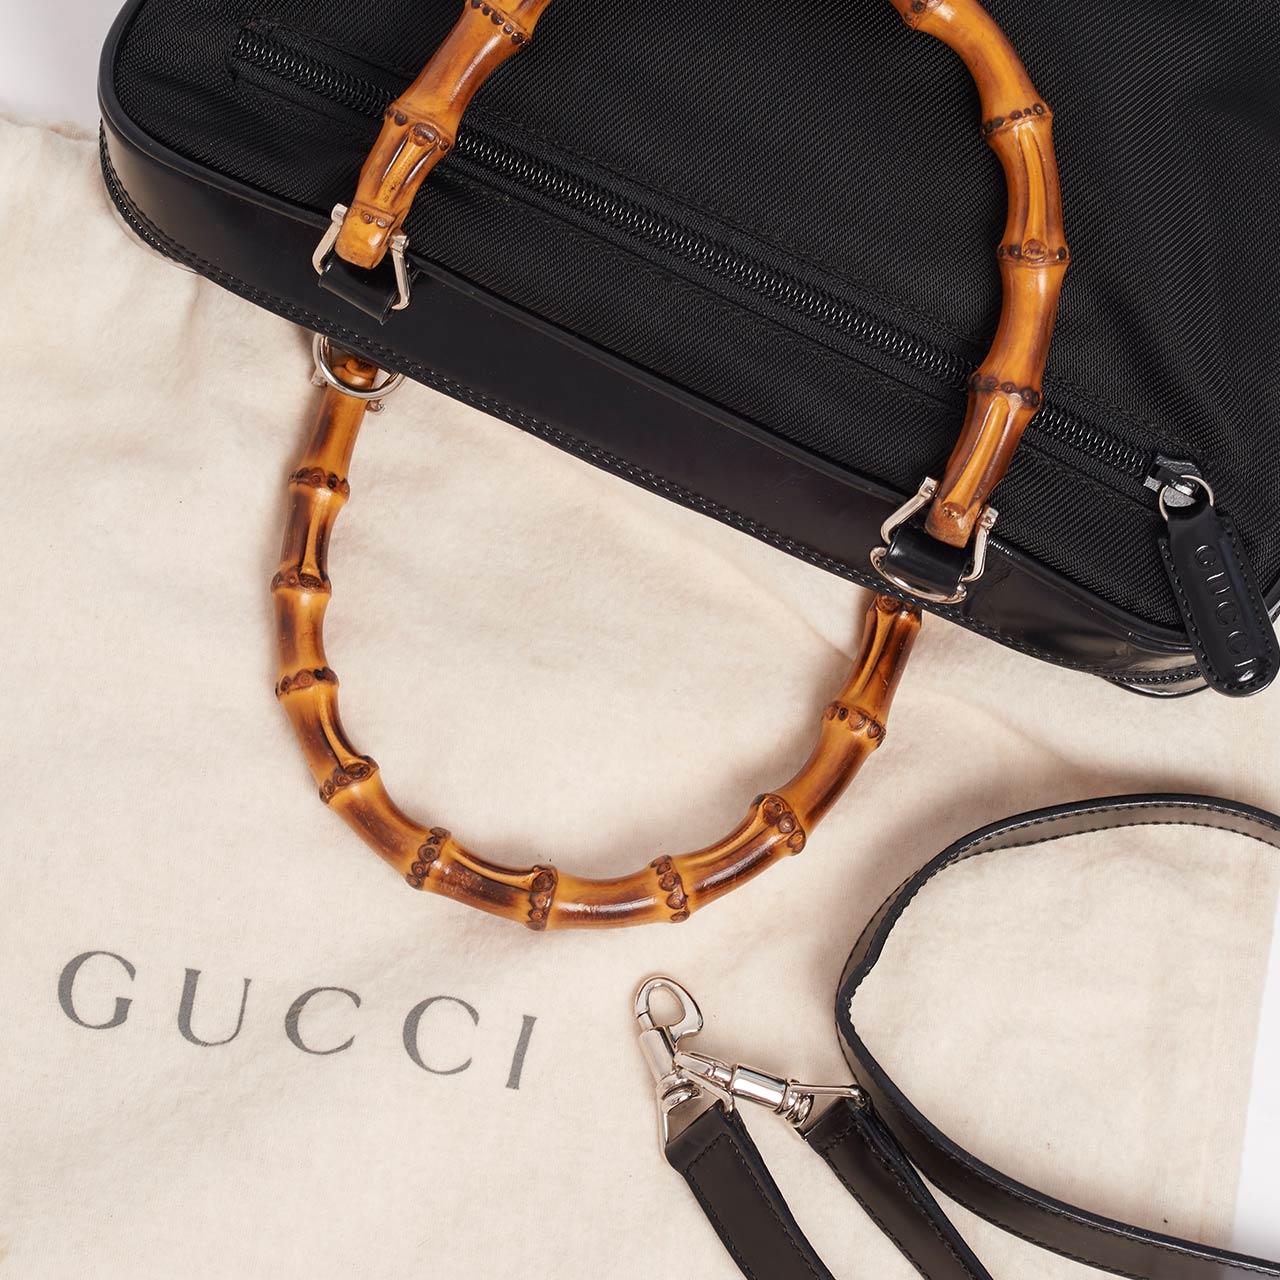 Vintage Gucci bamboo nylon leather shoulder bag